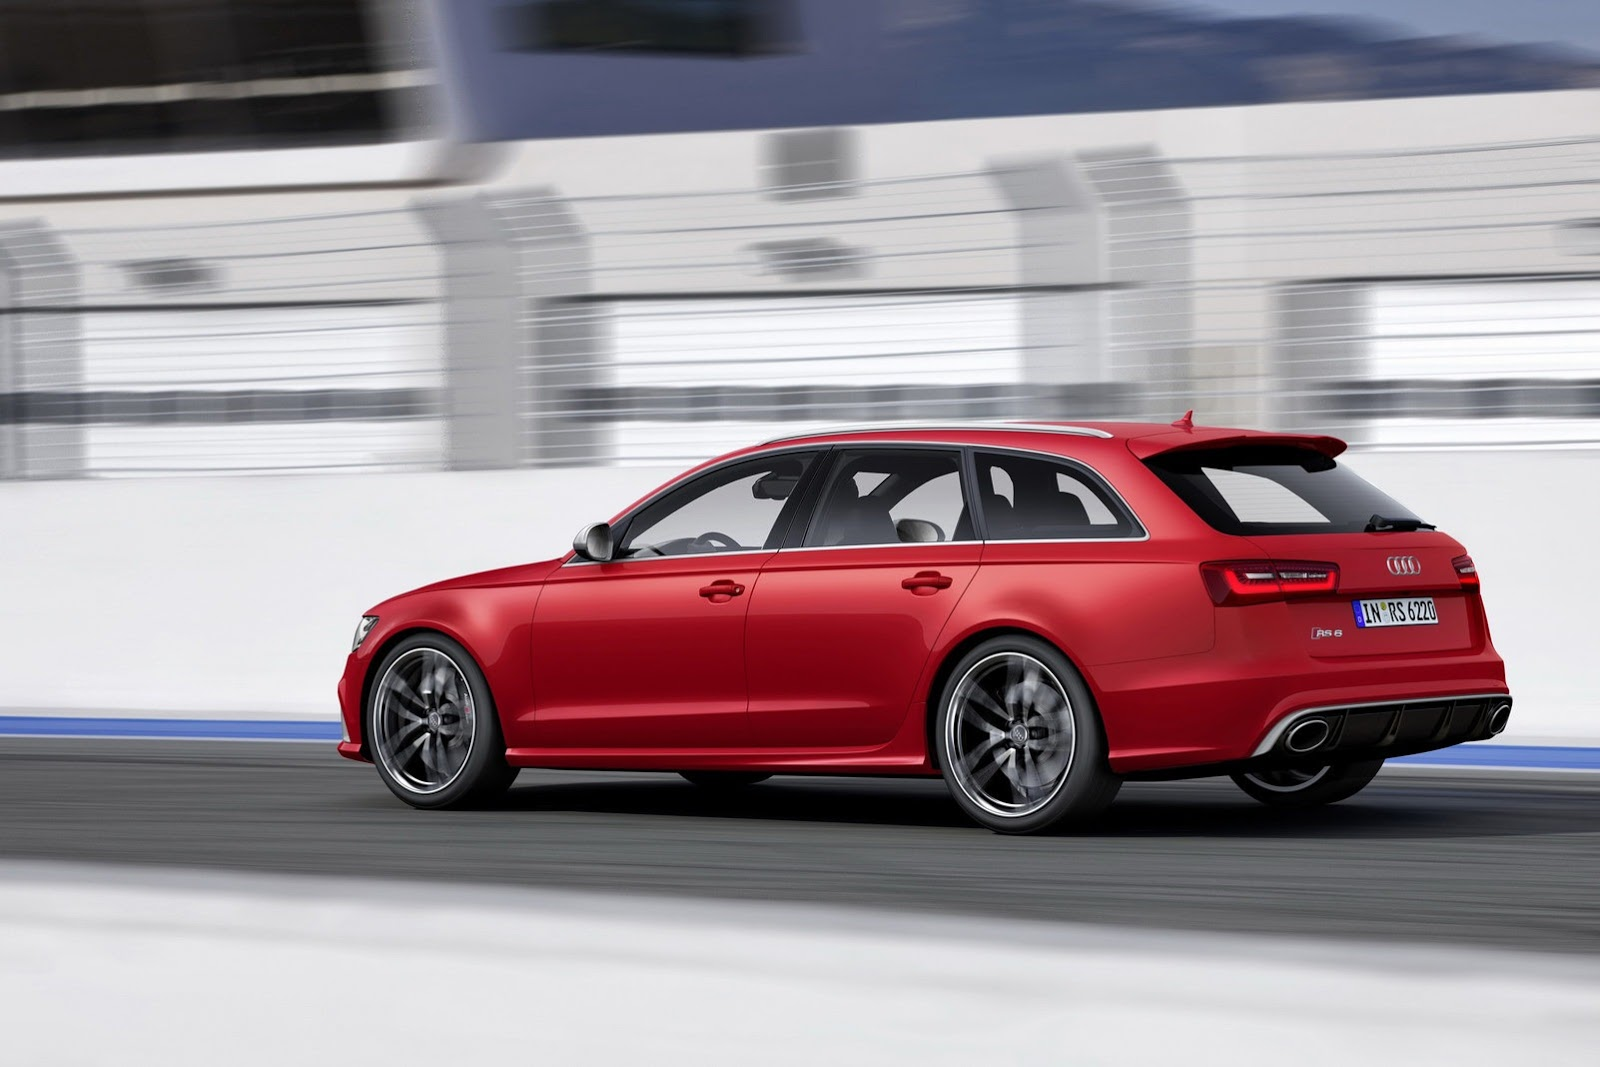 All New Audi Rs6 Gets Twin Turbo V8 With 560 Hp